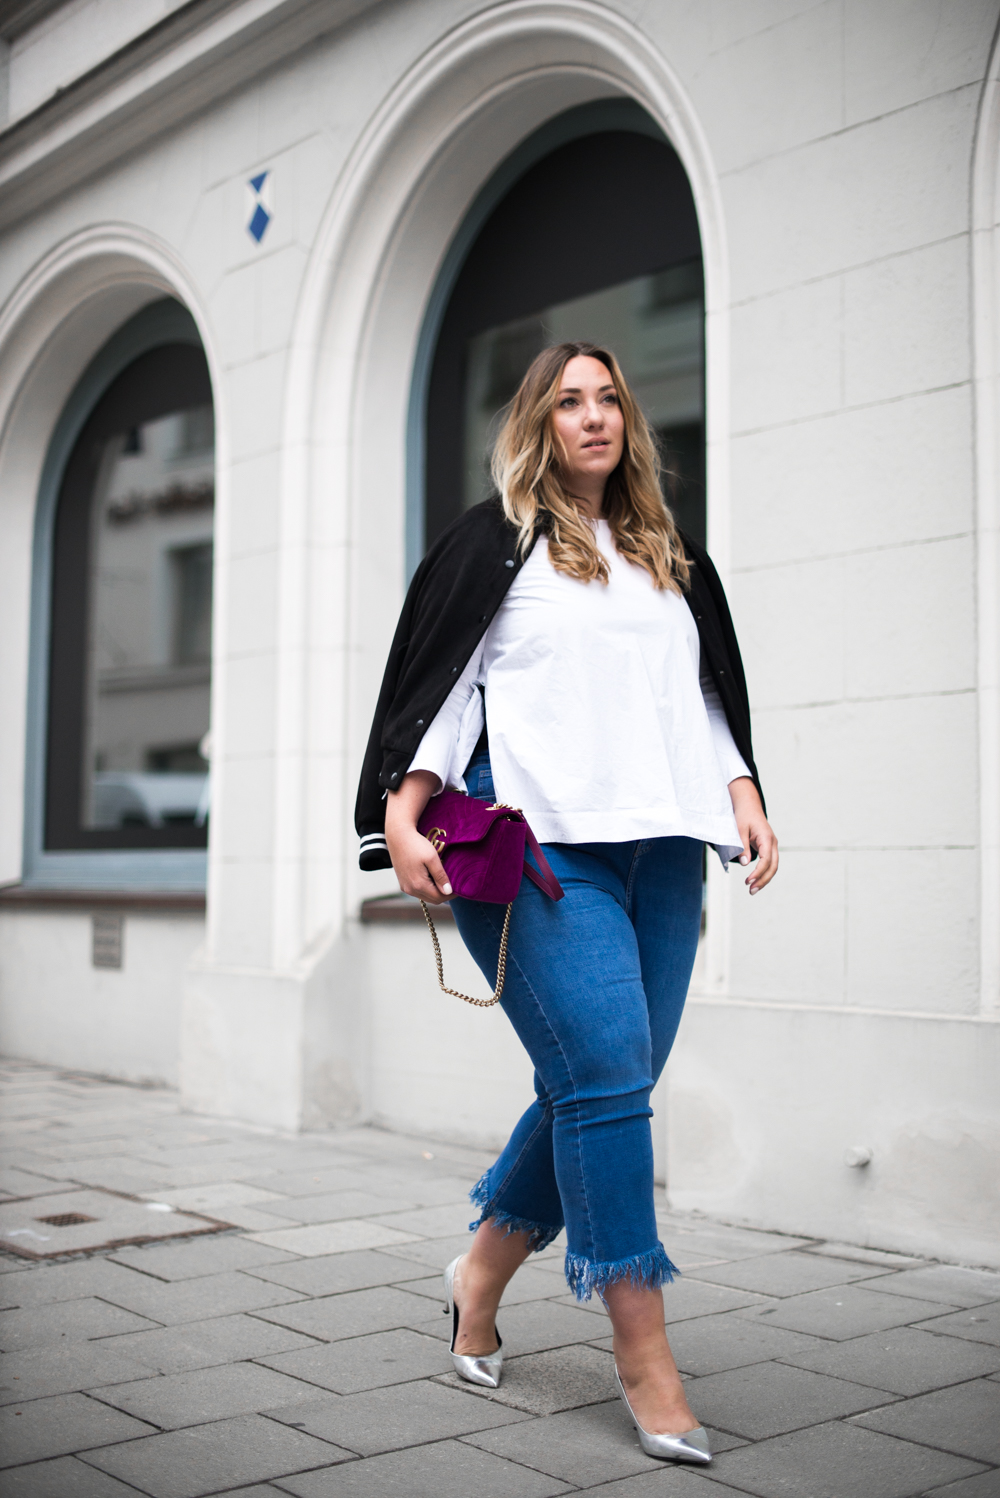 Gucci_The Skinny and the Curvy One_Ms wunderbar_Plus Size Blogger_curve blog_Fashionblog Deutschland_Plus Size Fashion Deutschland_College Jacke_Fringe Jeans (2 von 15)